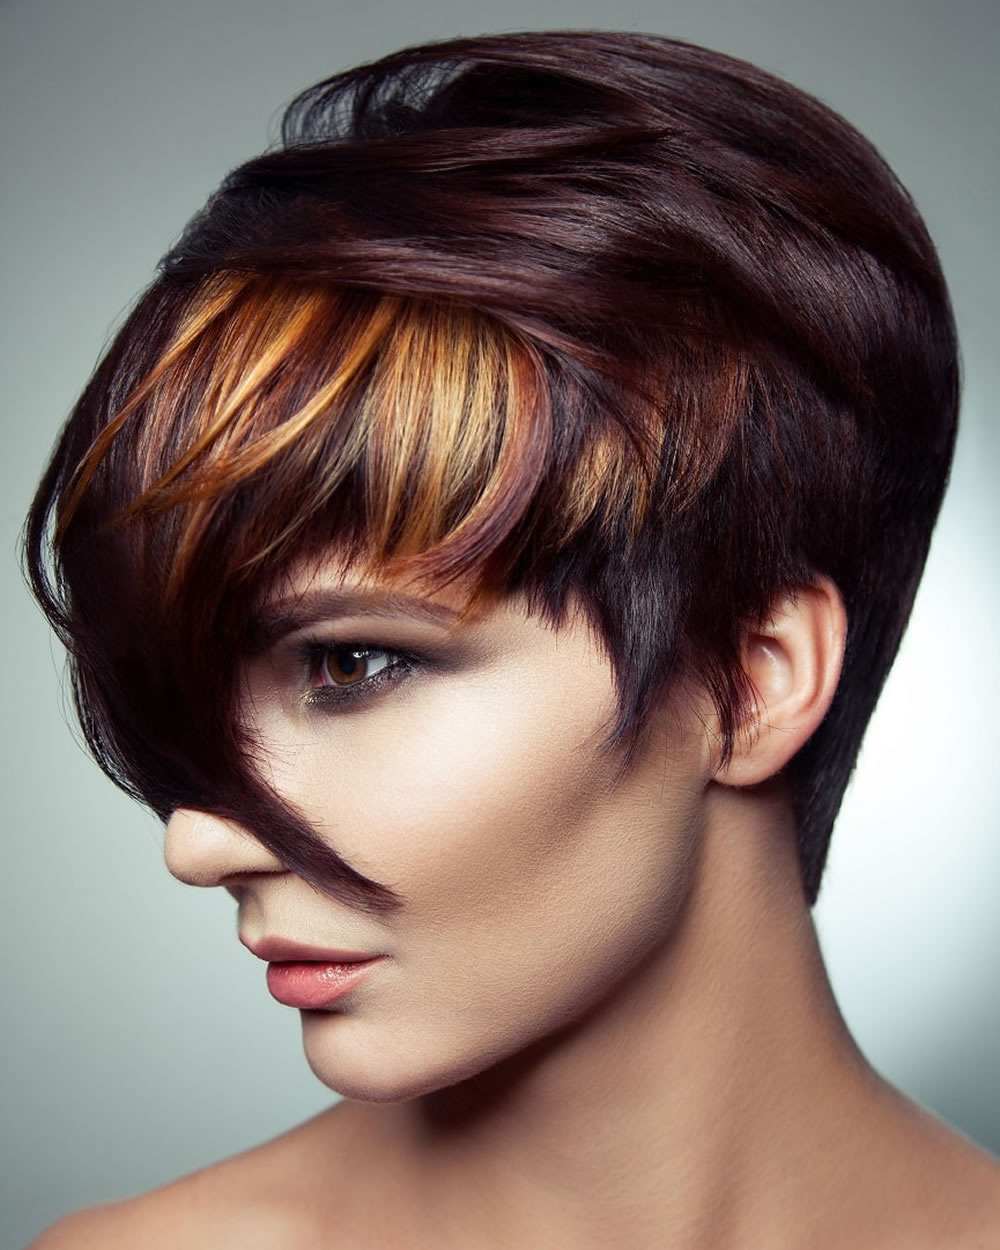 Pixie Haircuts For Fine Hair 2018 2019 : Curly, Wavy, Straight Hair Throughout Short Wavy Hairstyles For Fine Hair (View 17 of 25)